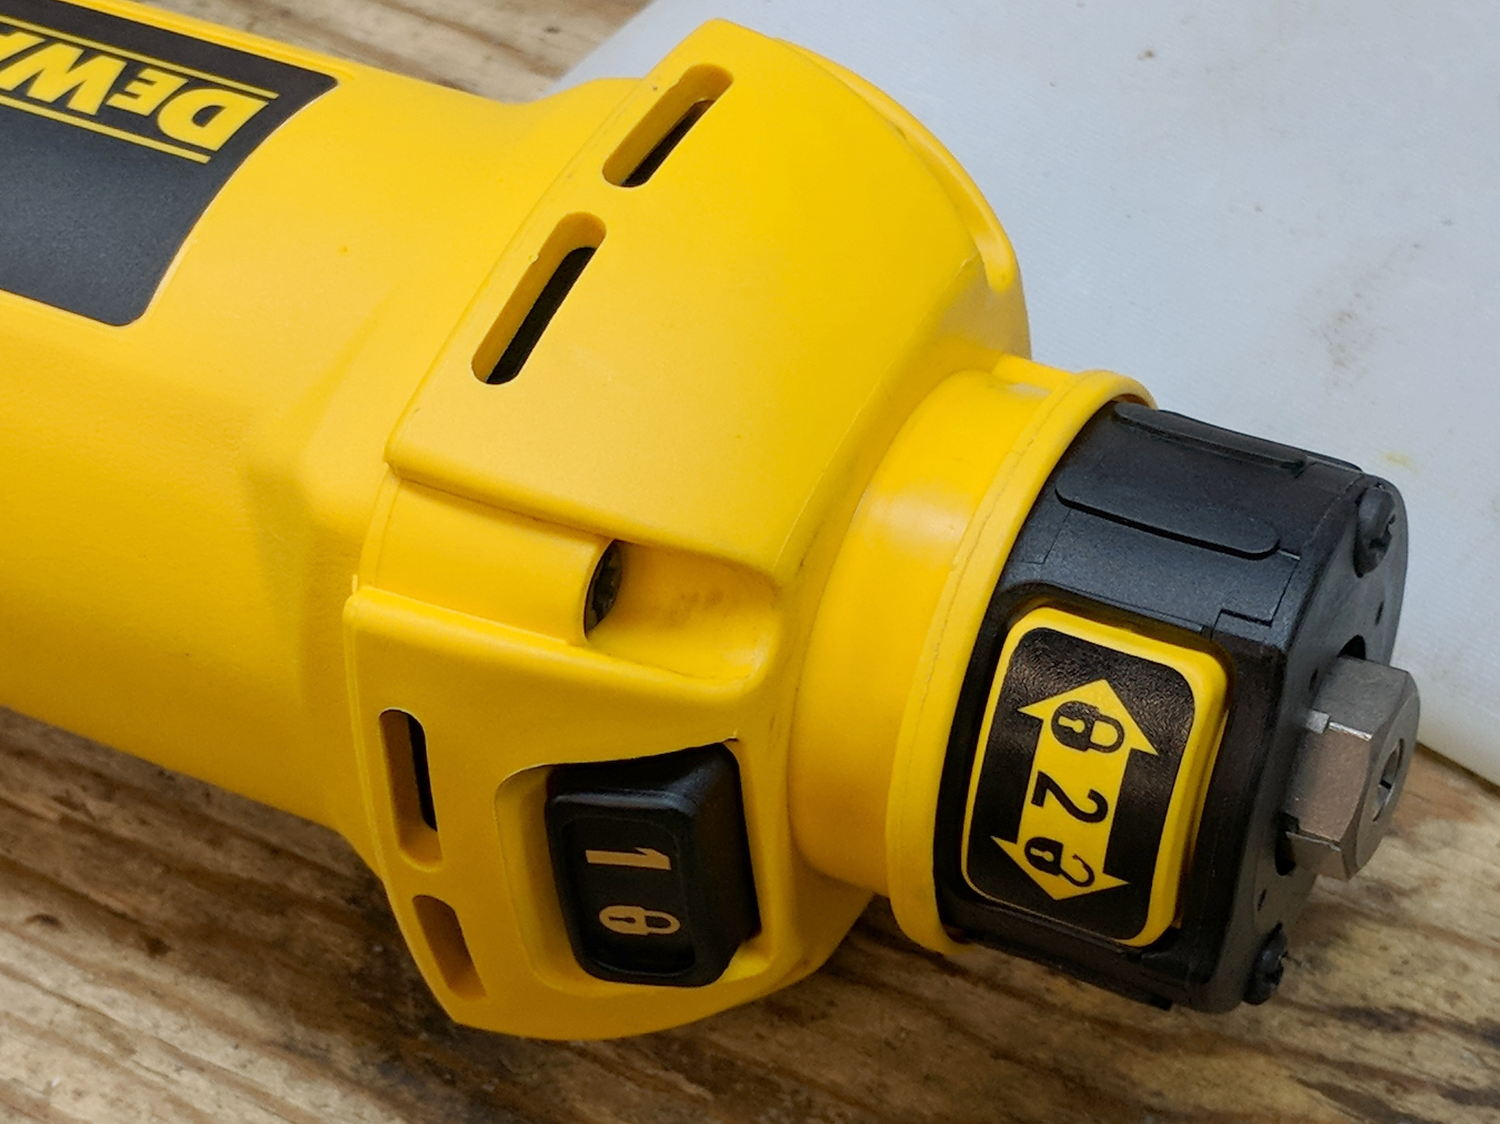 MPCNC: DeWalt DW660 Collet Grip Removal | The Smell of